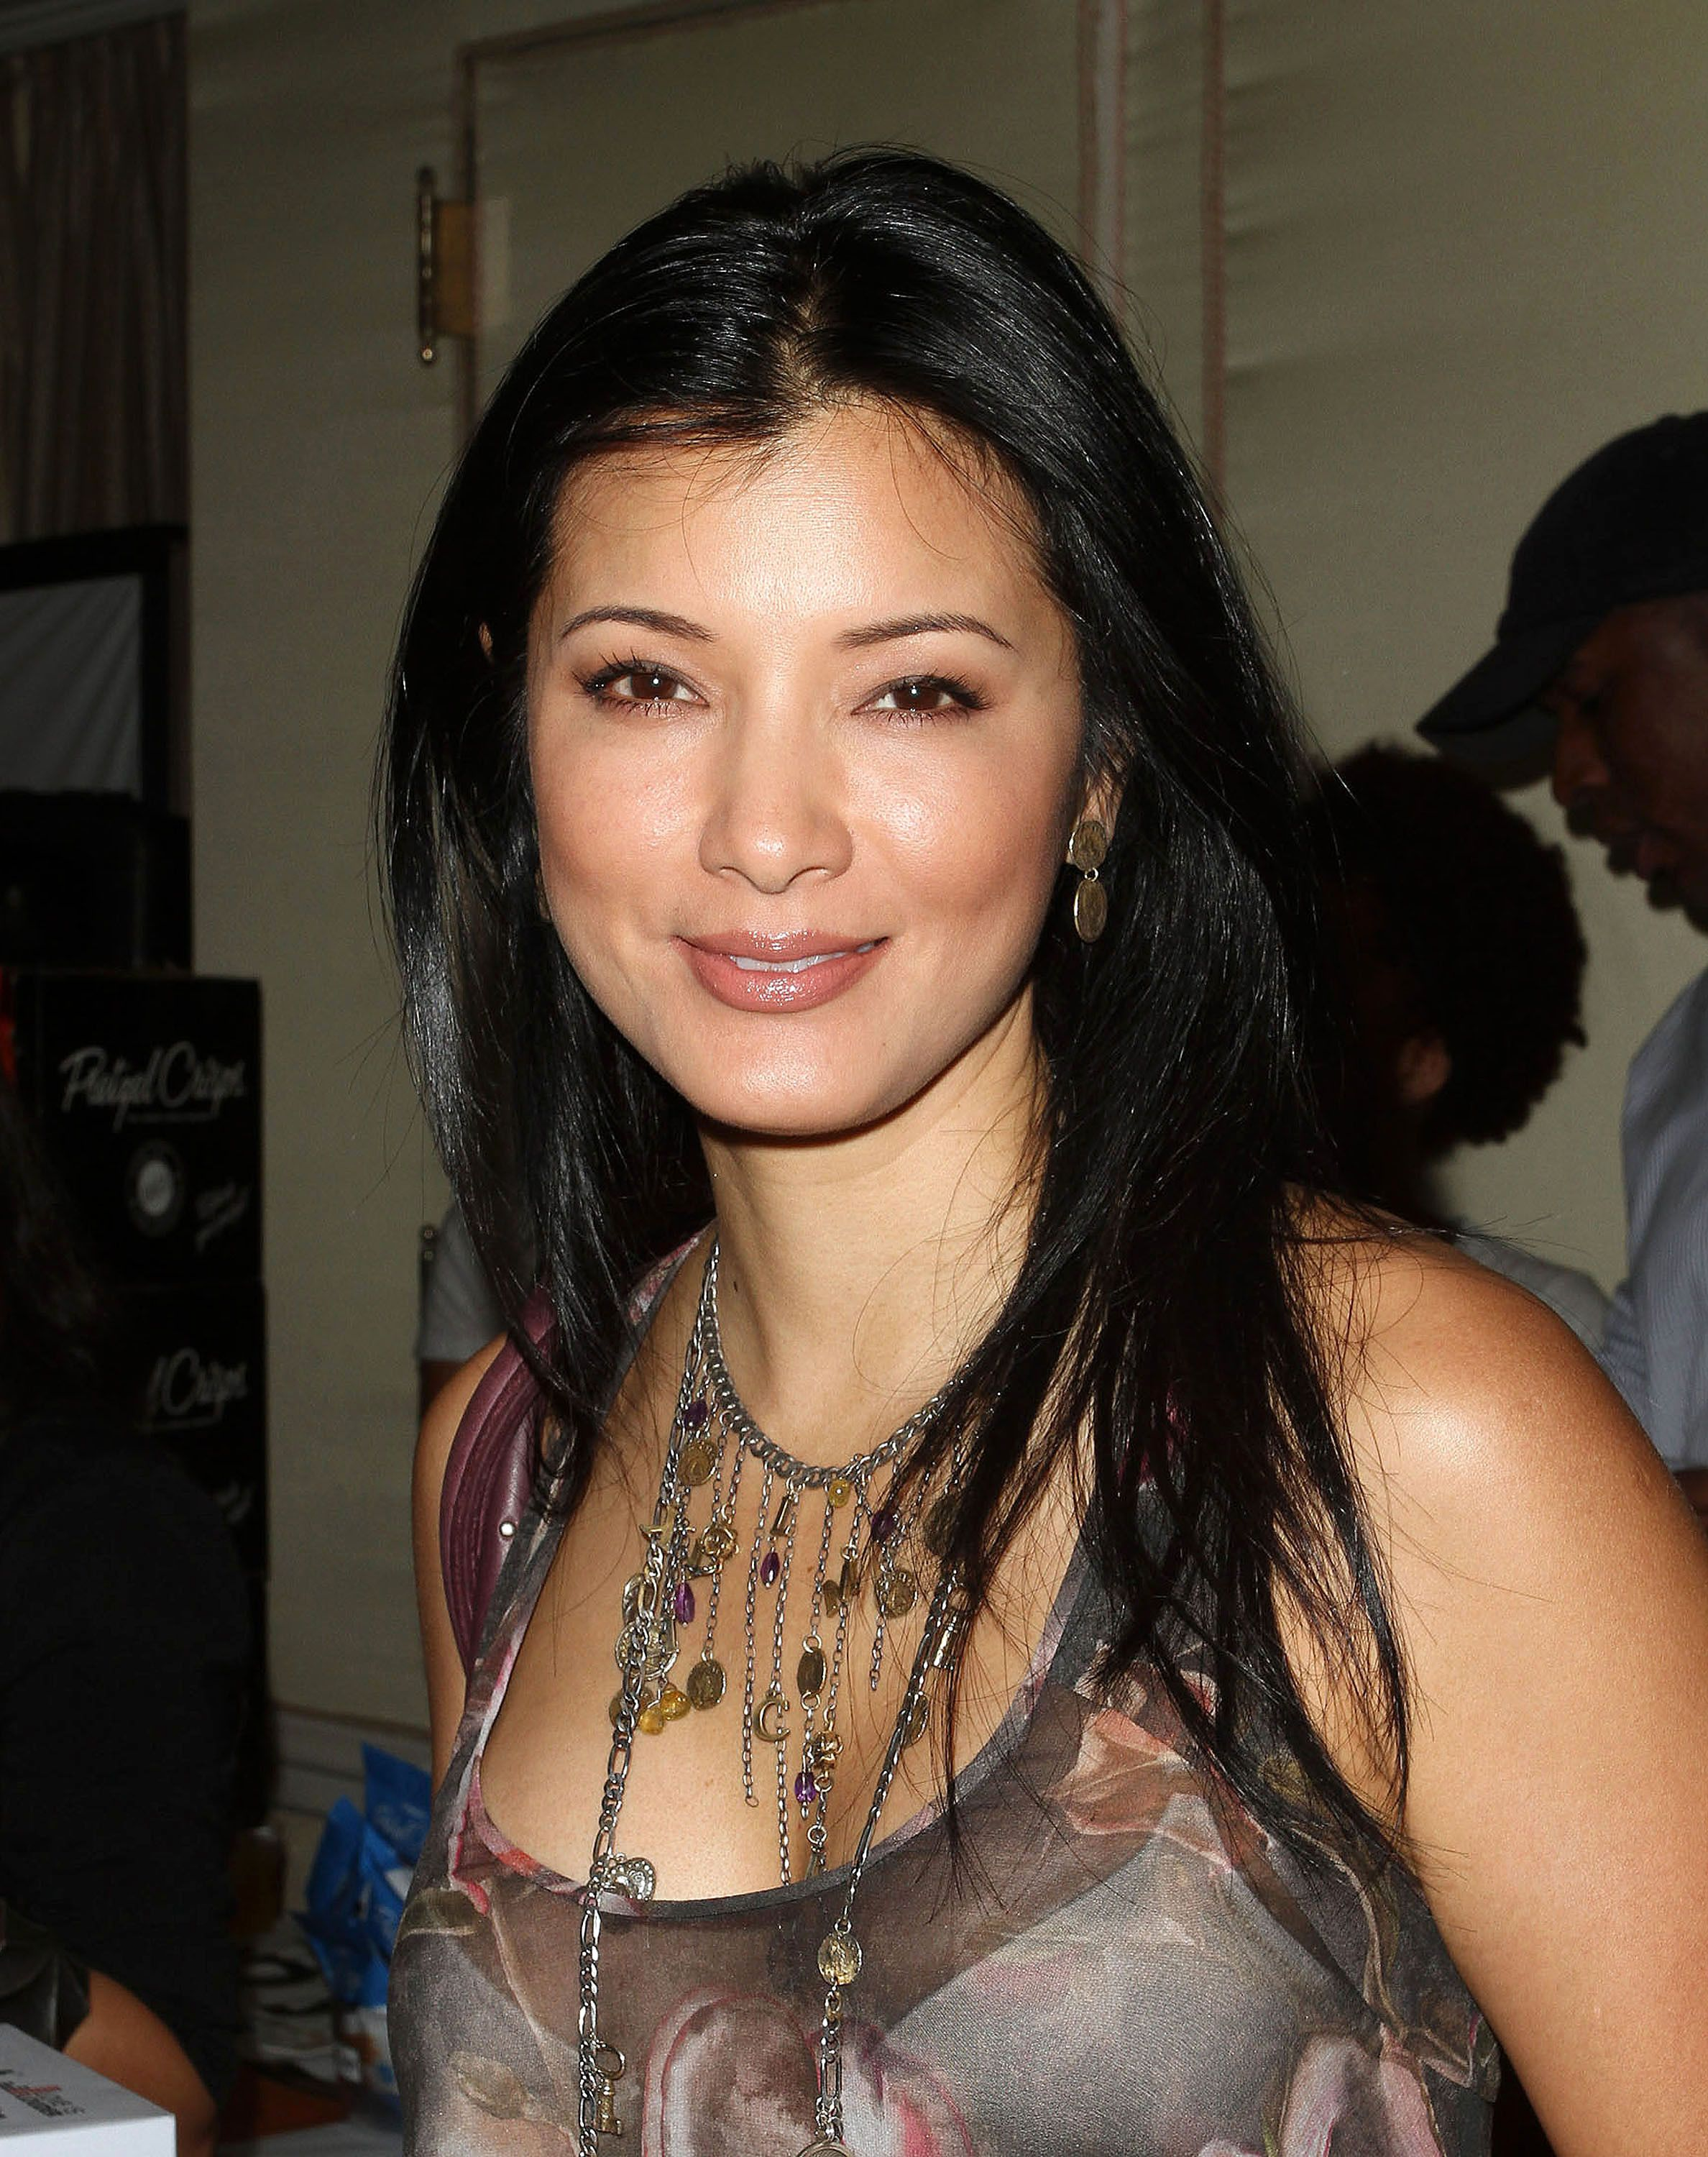 kelly hu voice actorkelly hu 2017, kelly hu биография, kelly hu 2002, kelly hu 100, kelly hu twitter, kelly hu imdb, kelly hu vs maggie q, kelly hu wikipédia, kelly hu instagram, kelly hu wdw, kelly hu marvel, kelly hu friday the 13th, kelly hu maxim photos, kelly hu voice actor, kelly hu films, kelly hu photo, kelly hu facebook, kelly hu the librarian quest for the spear, kelly hu interview, kelly hu photos hot